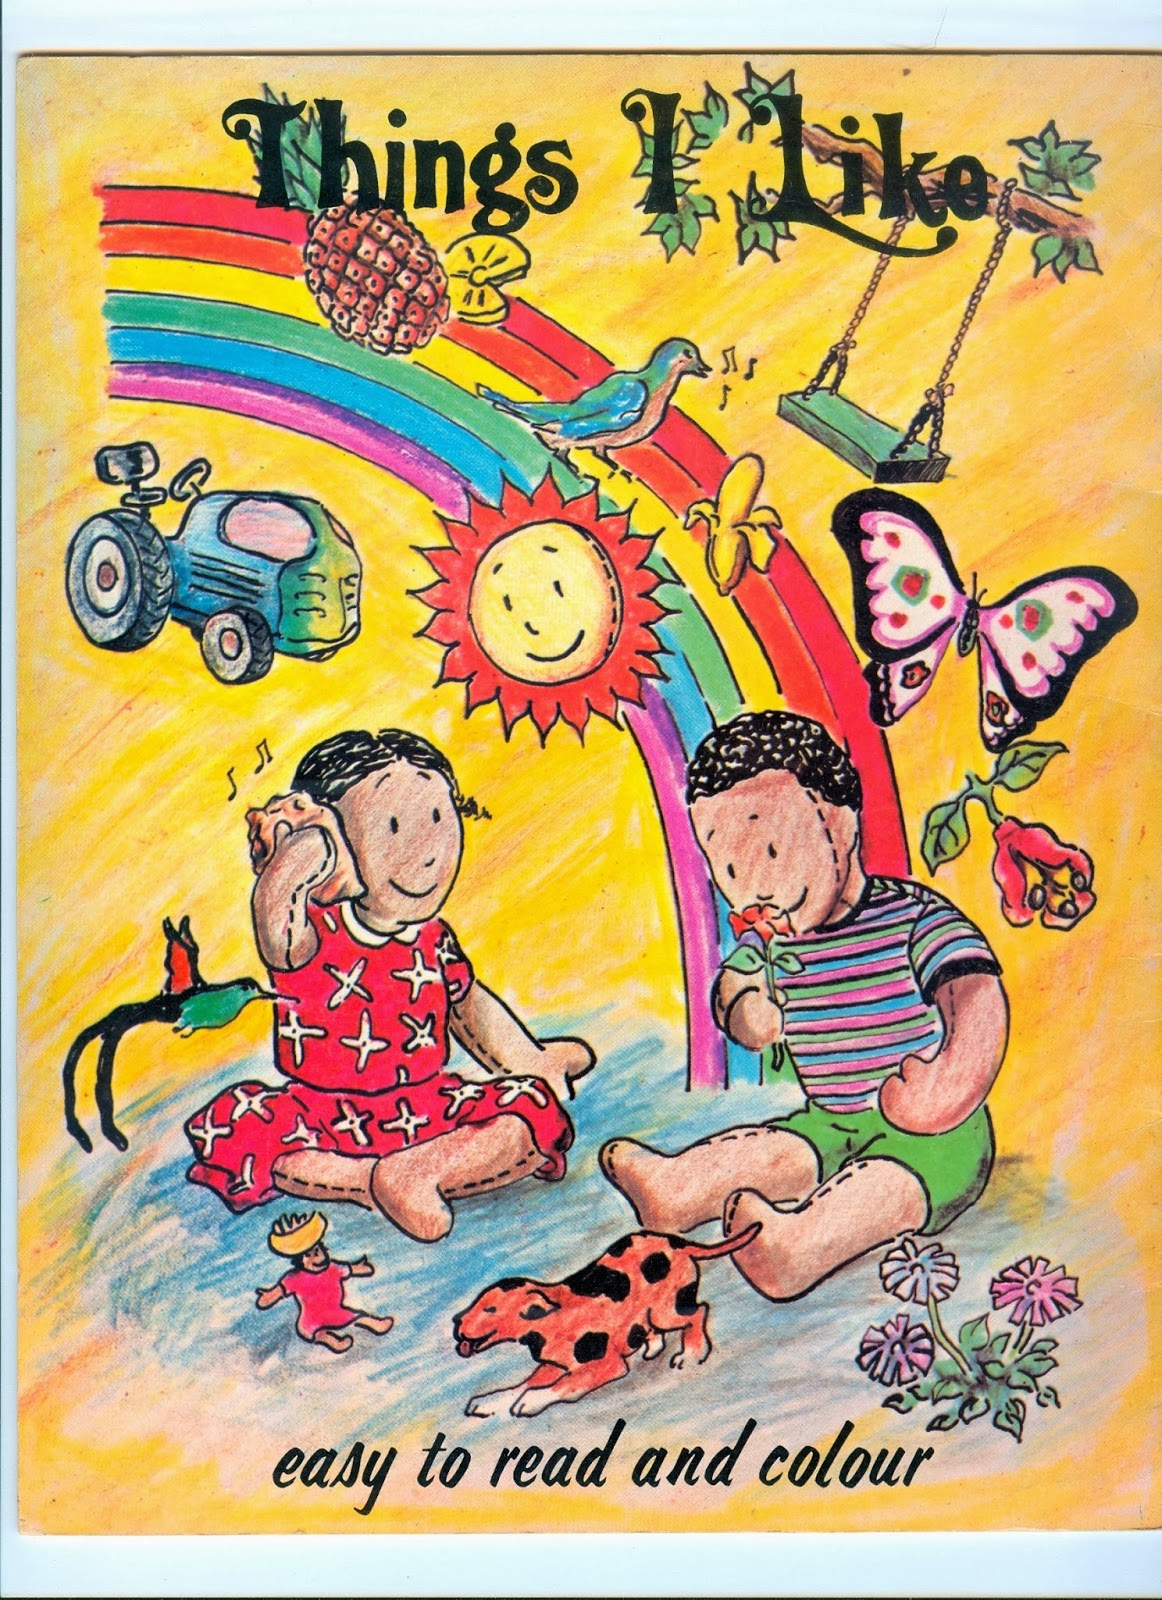 Colour childrens literature -  The Second With The Elements Of The Picture Outlined In Black Because I Saw Somewhere That Illustrations For Children S Books Should Could Be Outlined